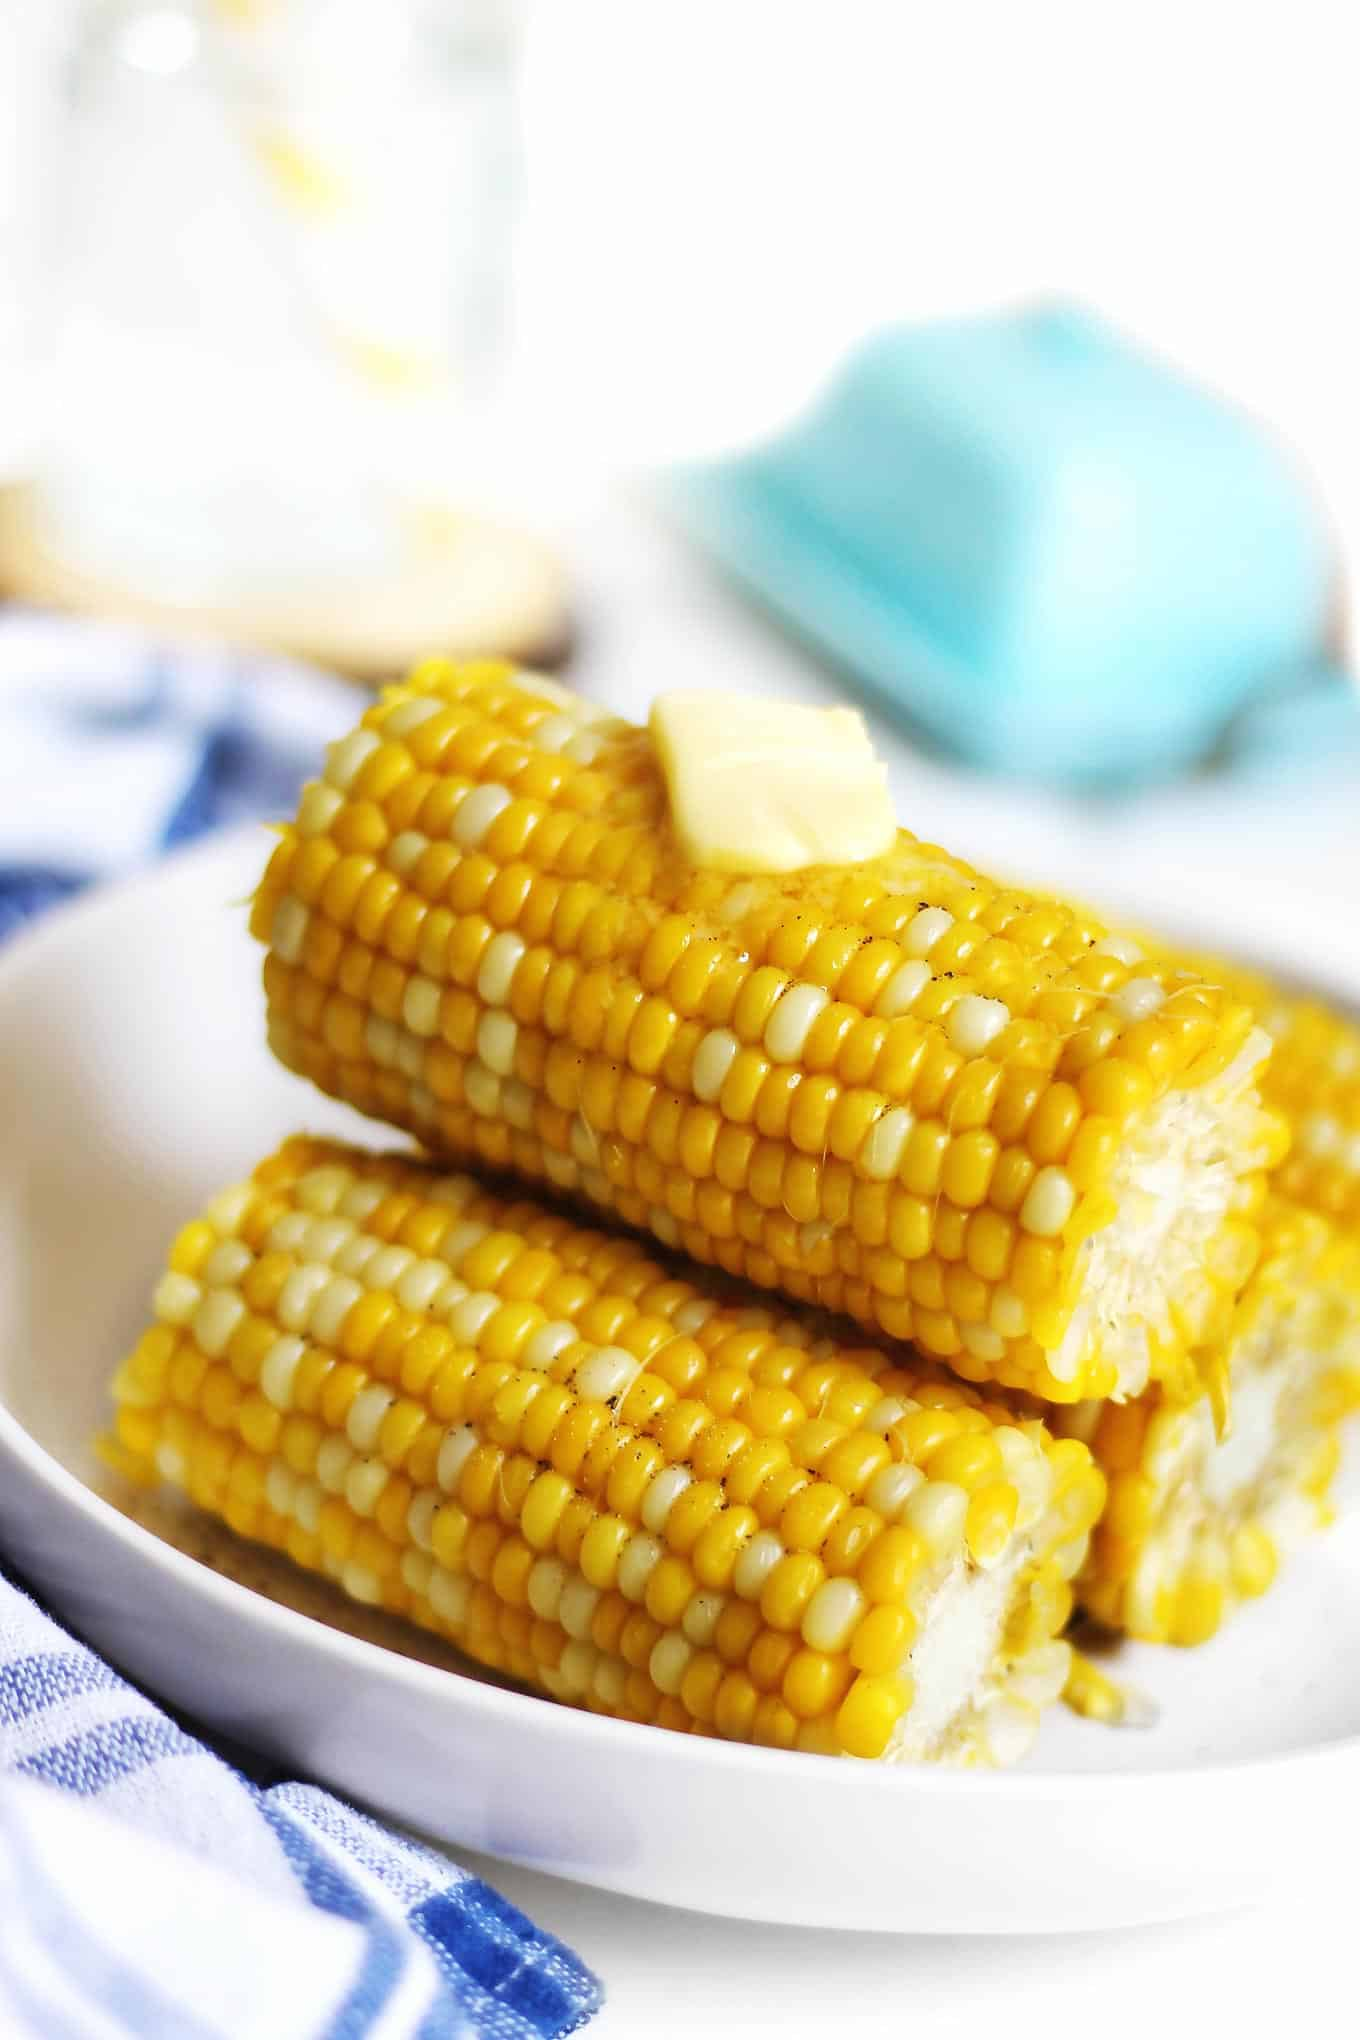 Corn on the cob stack with butter